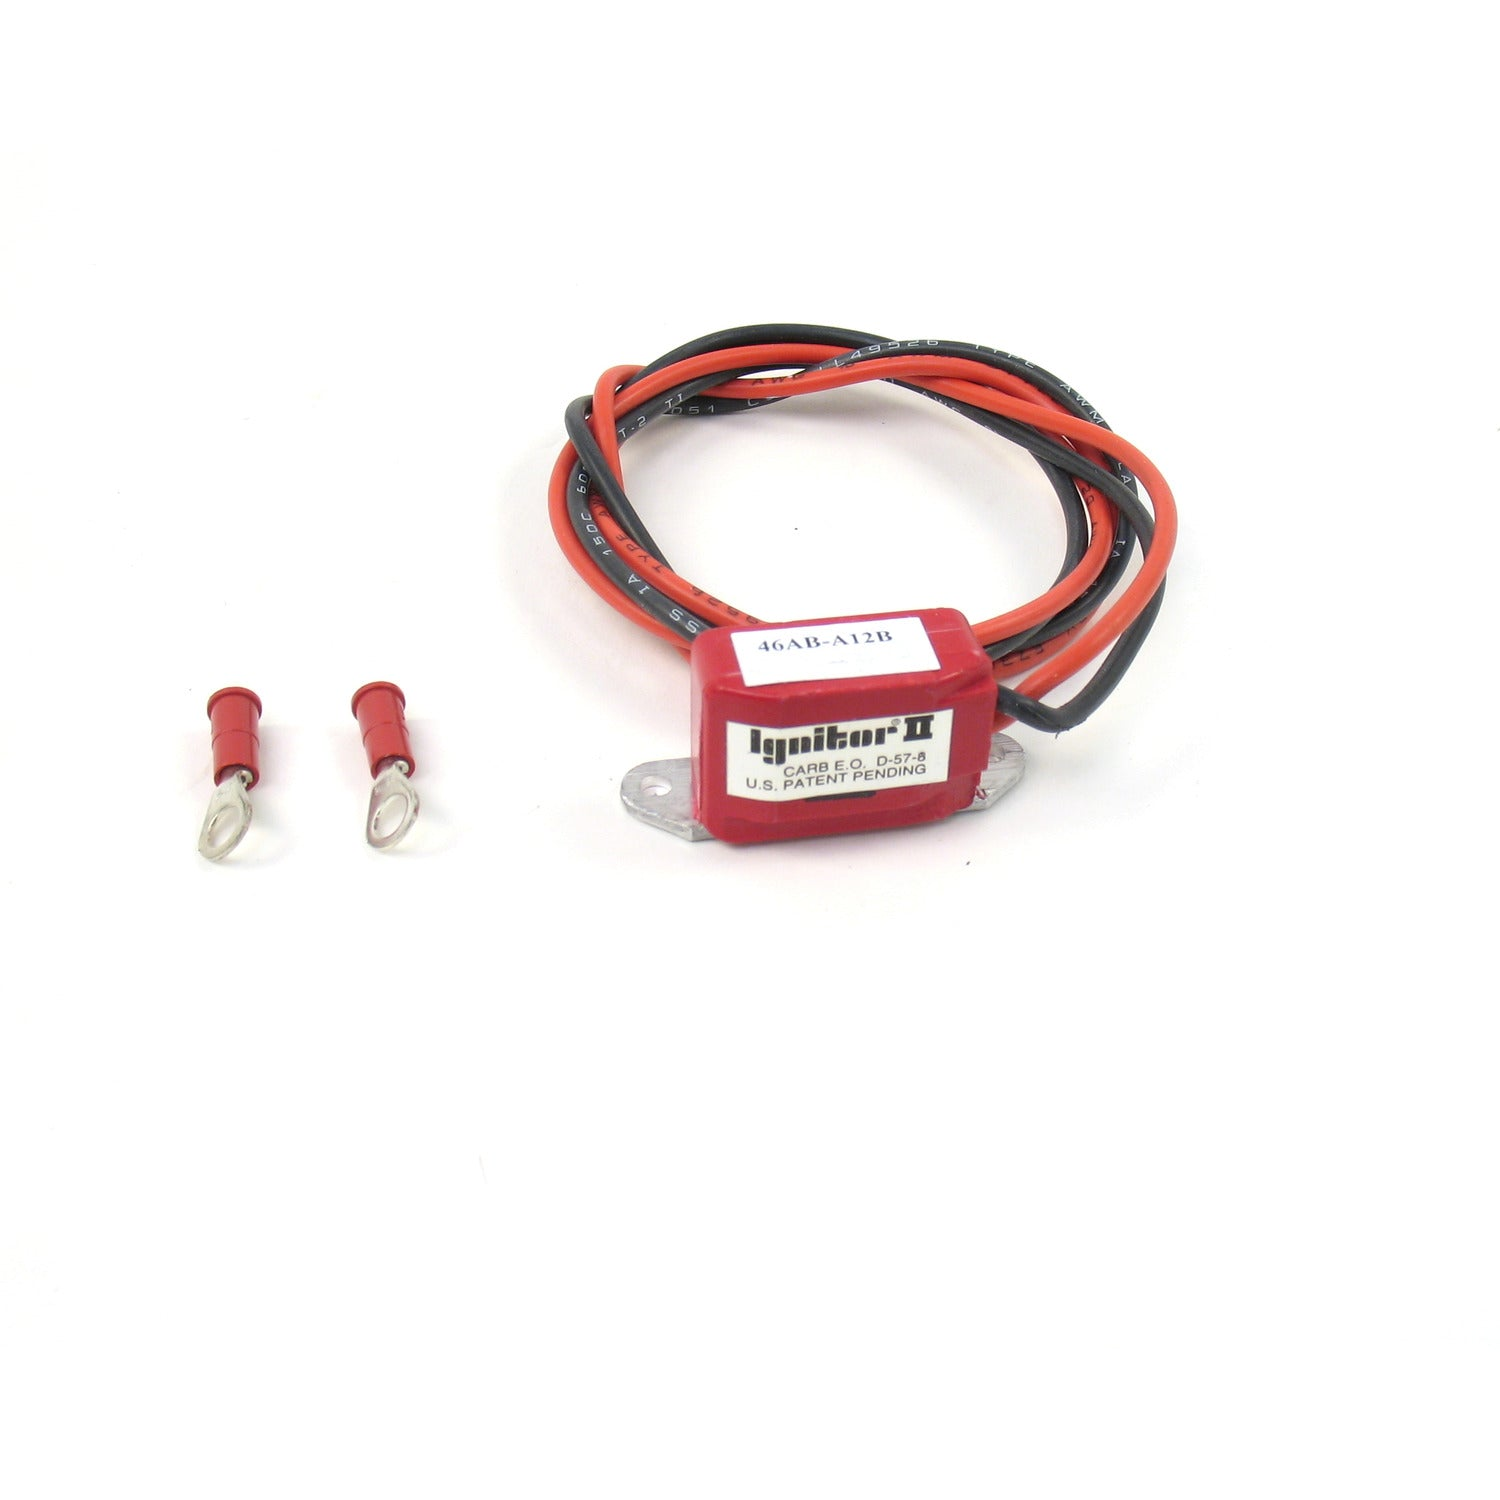 PerTronix D500702 Module (replacement) Ignitor II for PerTronix Flame-Thrower VW Cast Vacuum Distributor